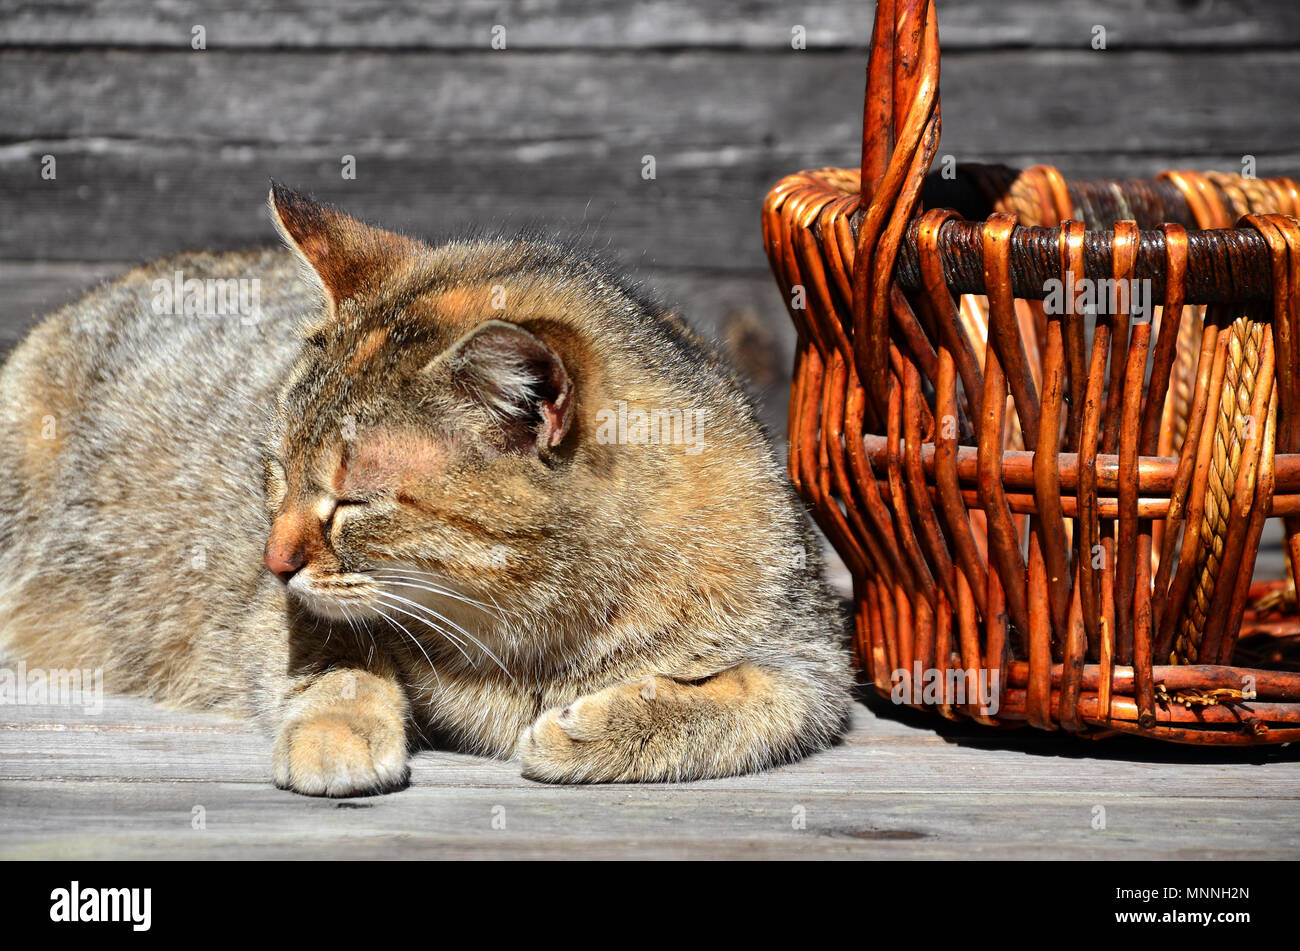 A multi-colored thick cat is located next to an empty wicker basket of wooden rods lies on a wooden surface against the background of a wall of black  Stock Photo